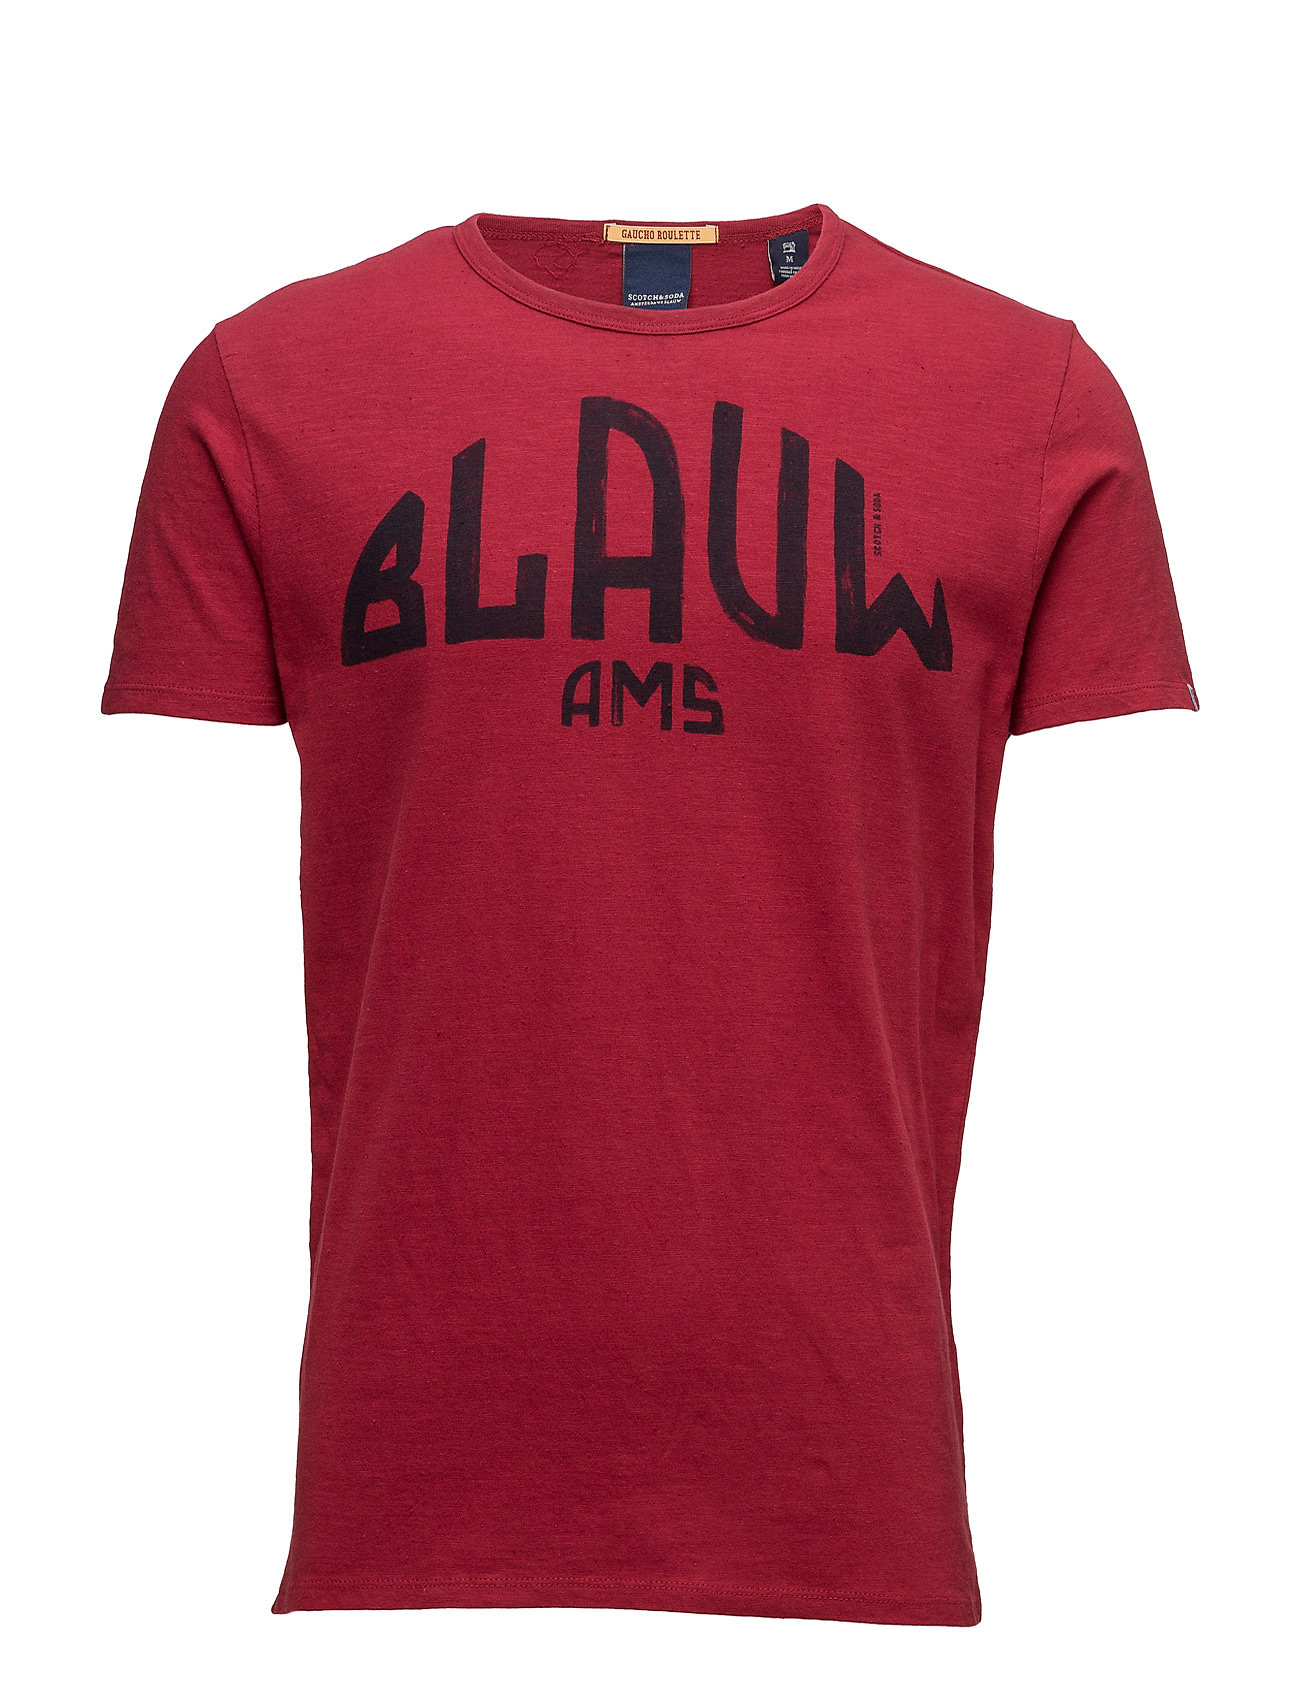 Ams Blauw Signature Printed Tee In Regular Fit With Relaxed Scotch & Soda Kortærmede til Herrer i